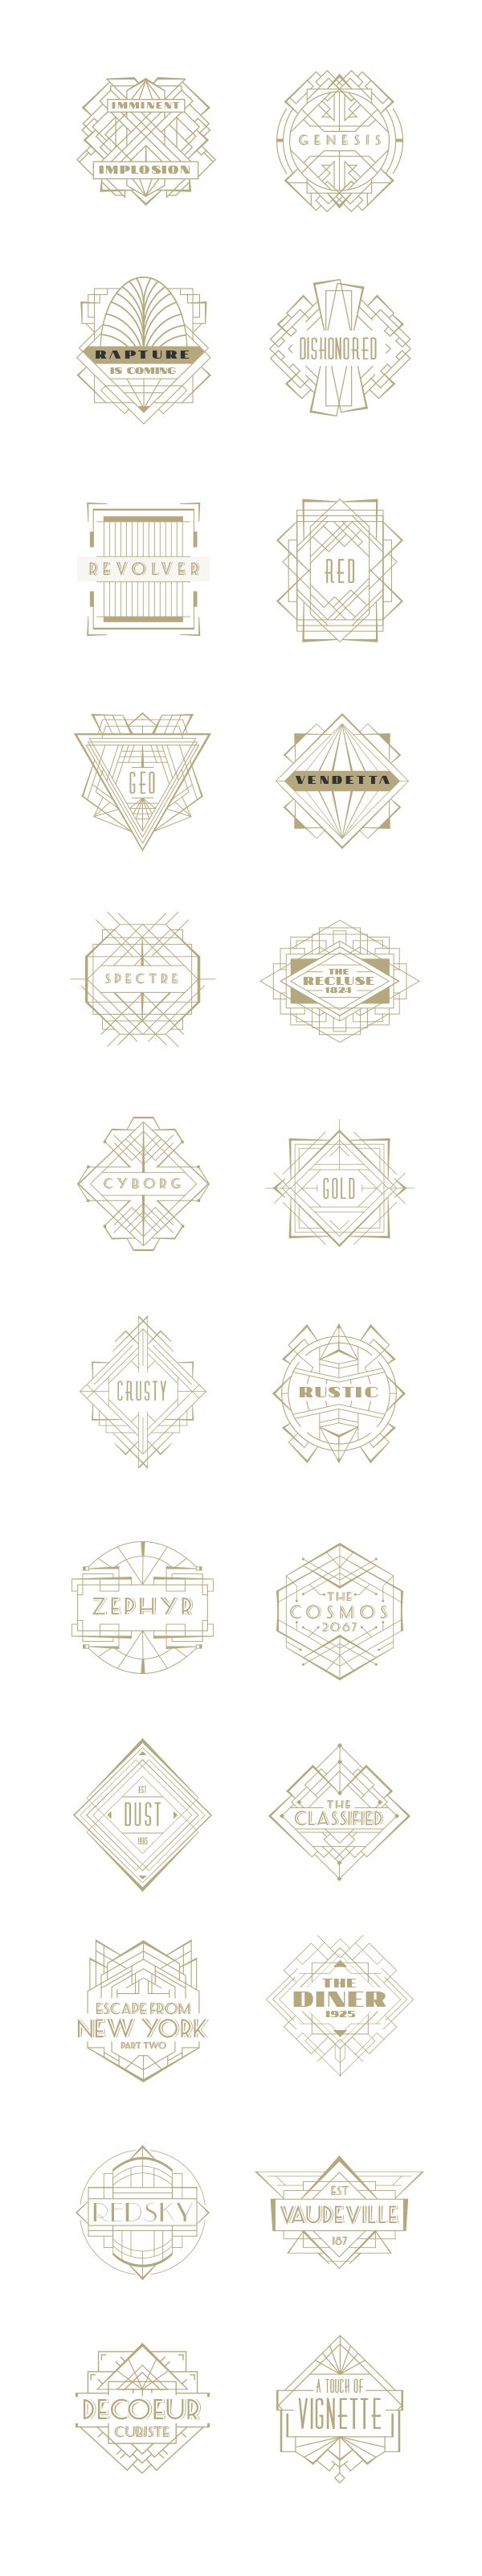 Art Deco Badges on Behance www.lab333.com www.facebook.com/pages/LAB-STYLE/585086788169863 www.lab333style.com www.instagram.com/lab_333 lablikes.tumblr.com www.pinterest.com/labstyle